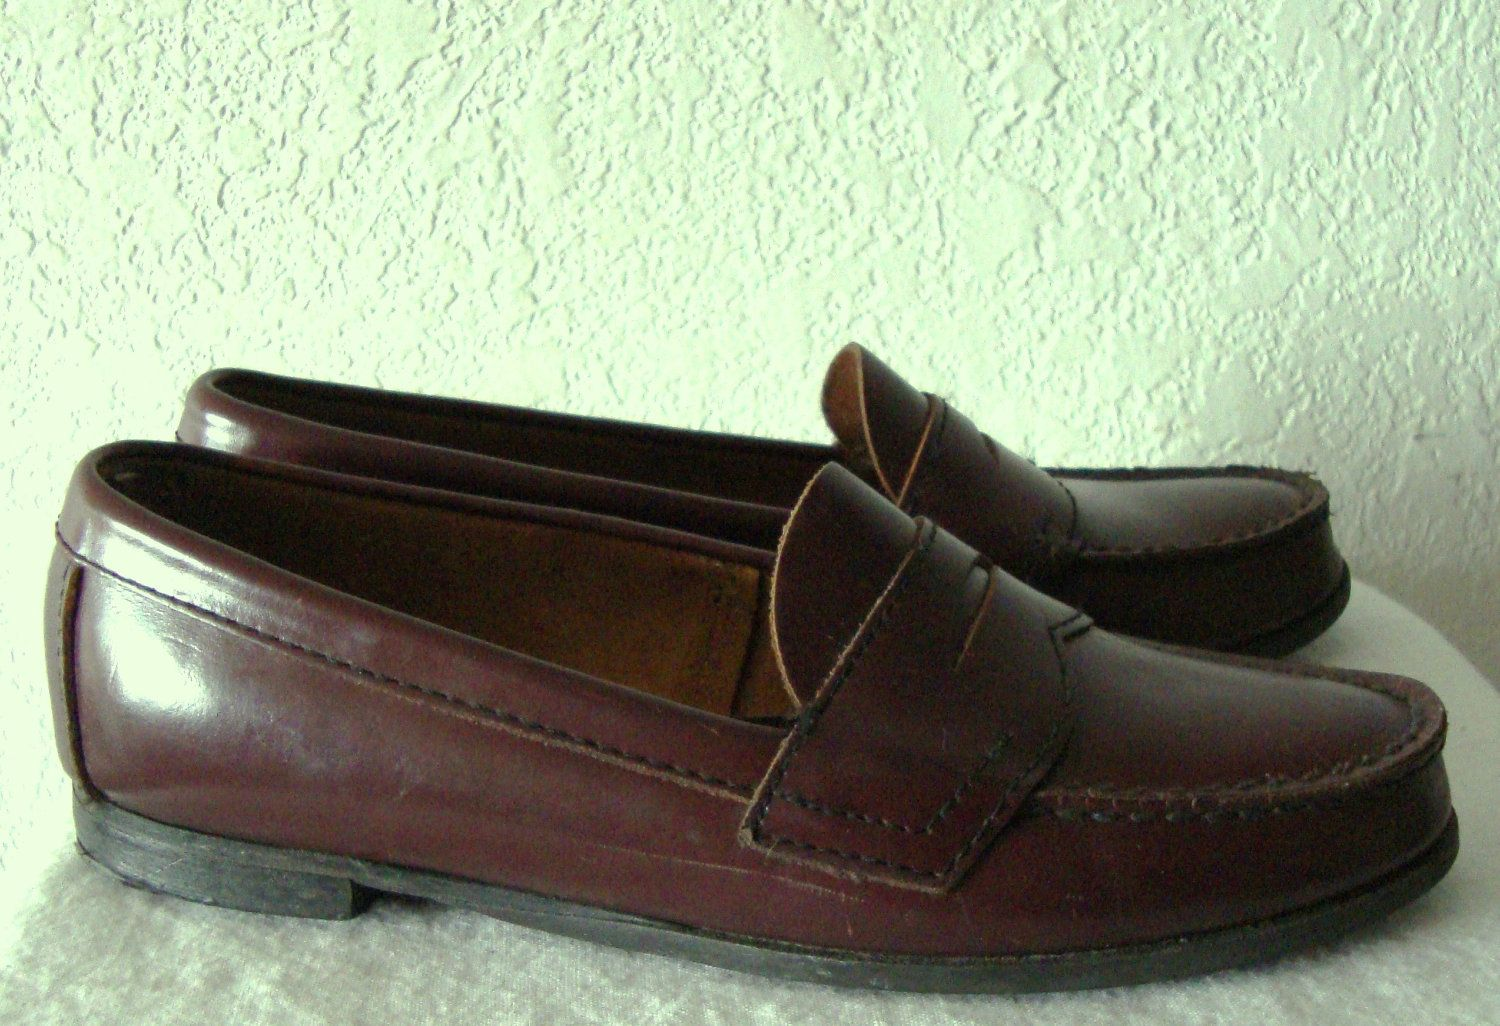 e841ba62a21 Womans Preppy Vintage Burgundy Colored PENNY LOAFERS by DEXTER.8M.  24.99